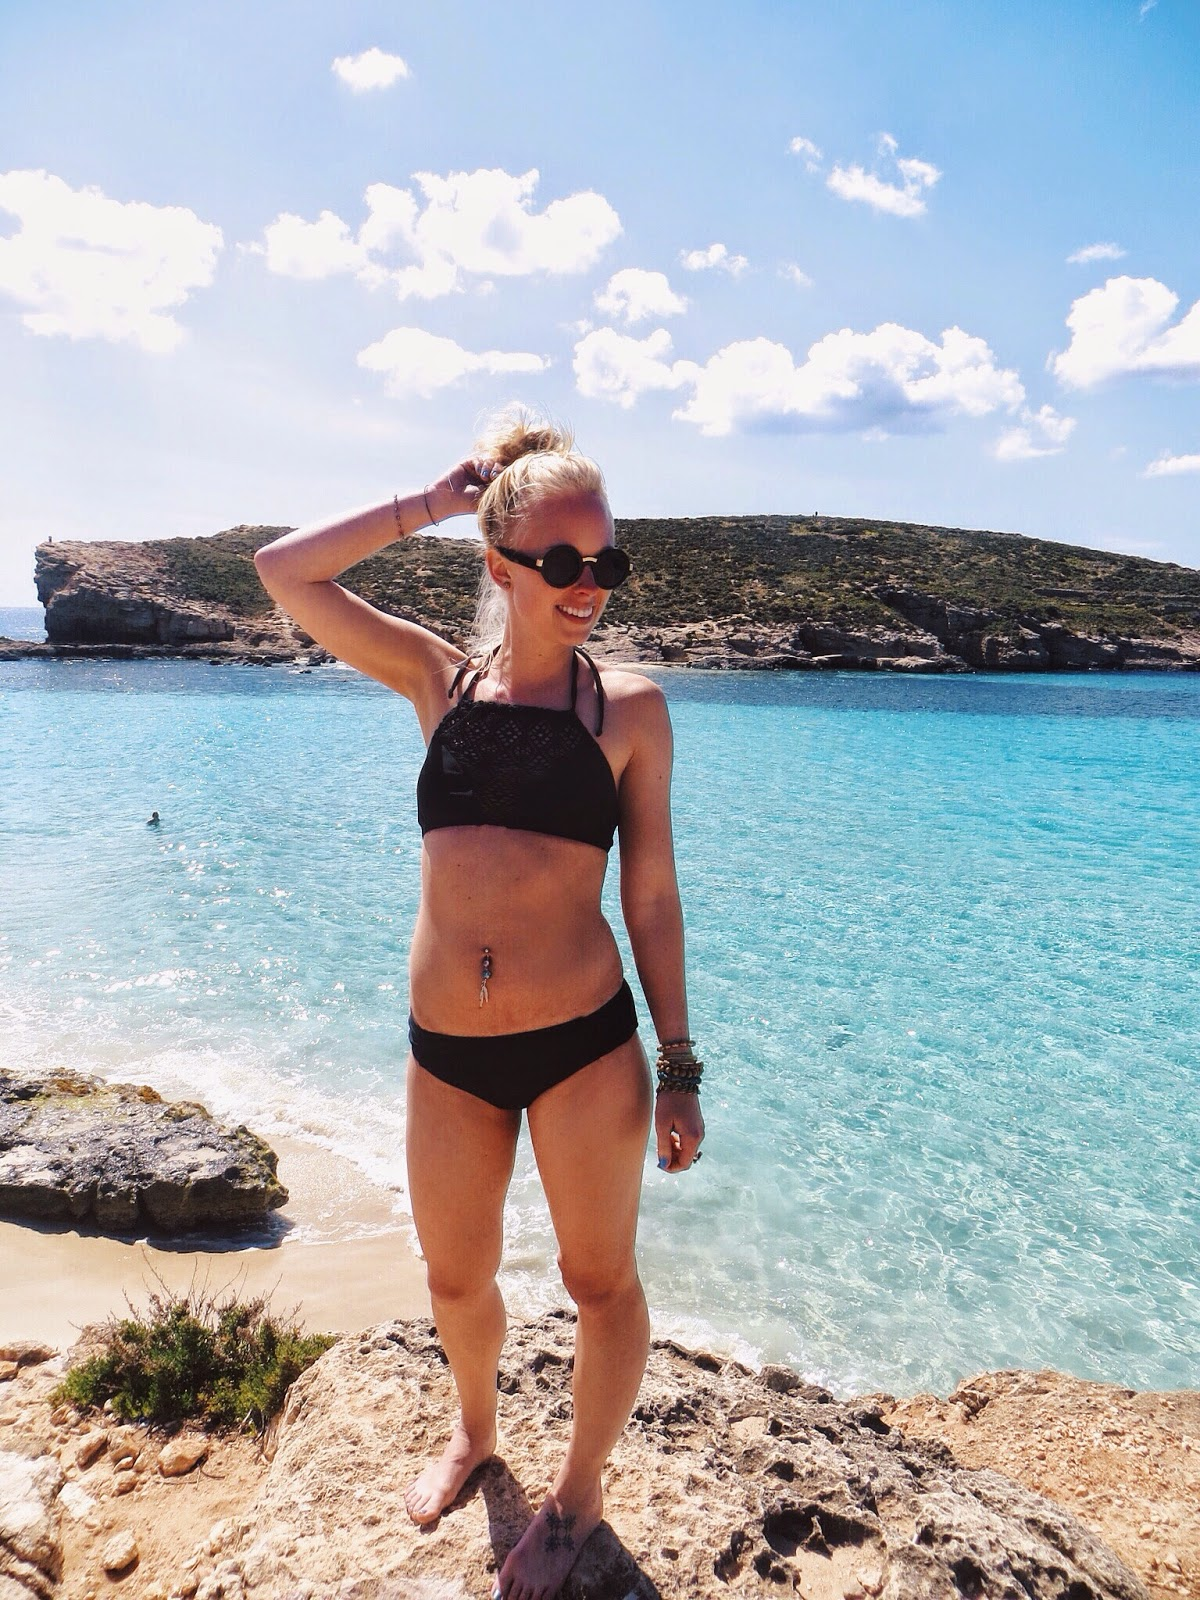 maurice's crochet swim top, maurices swim bottoms, azeeta designs feather belly ring, ami clubwear fringe backpack, clearest water in the world, malta, gozo, comino, day trips